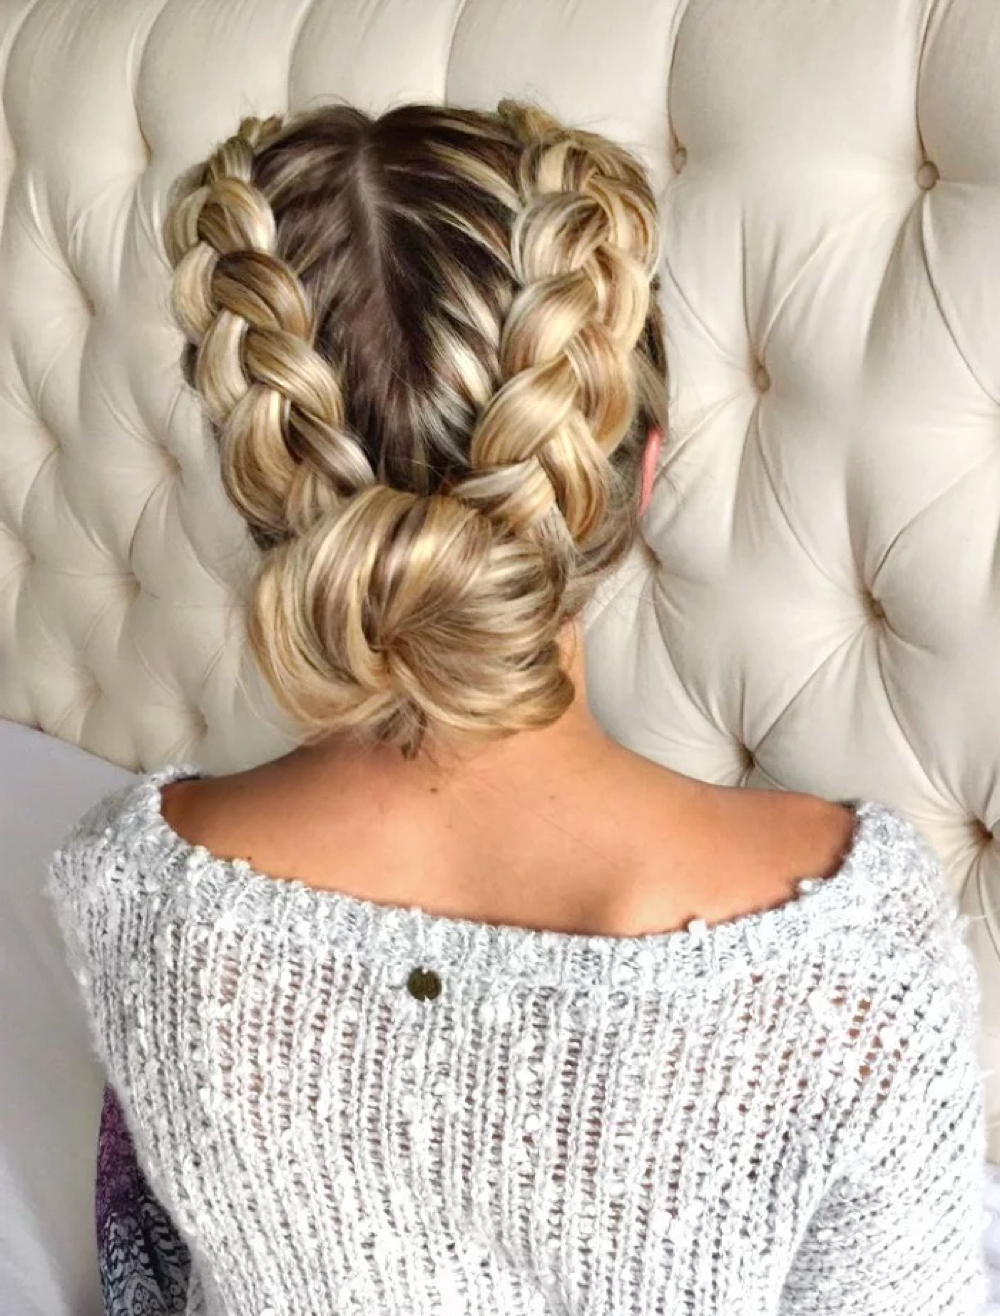 29 Gorgeous Braided Updo Ideas For 2019 Within Current Braided Chignon Hairstyles (View 20 of 20)